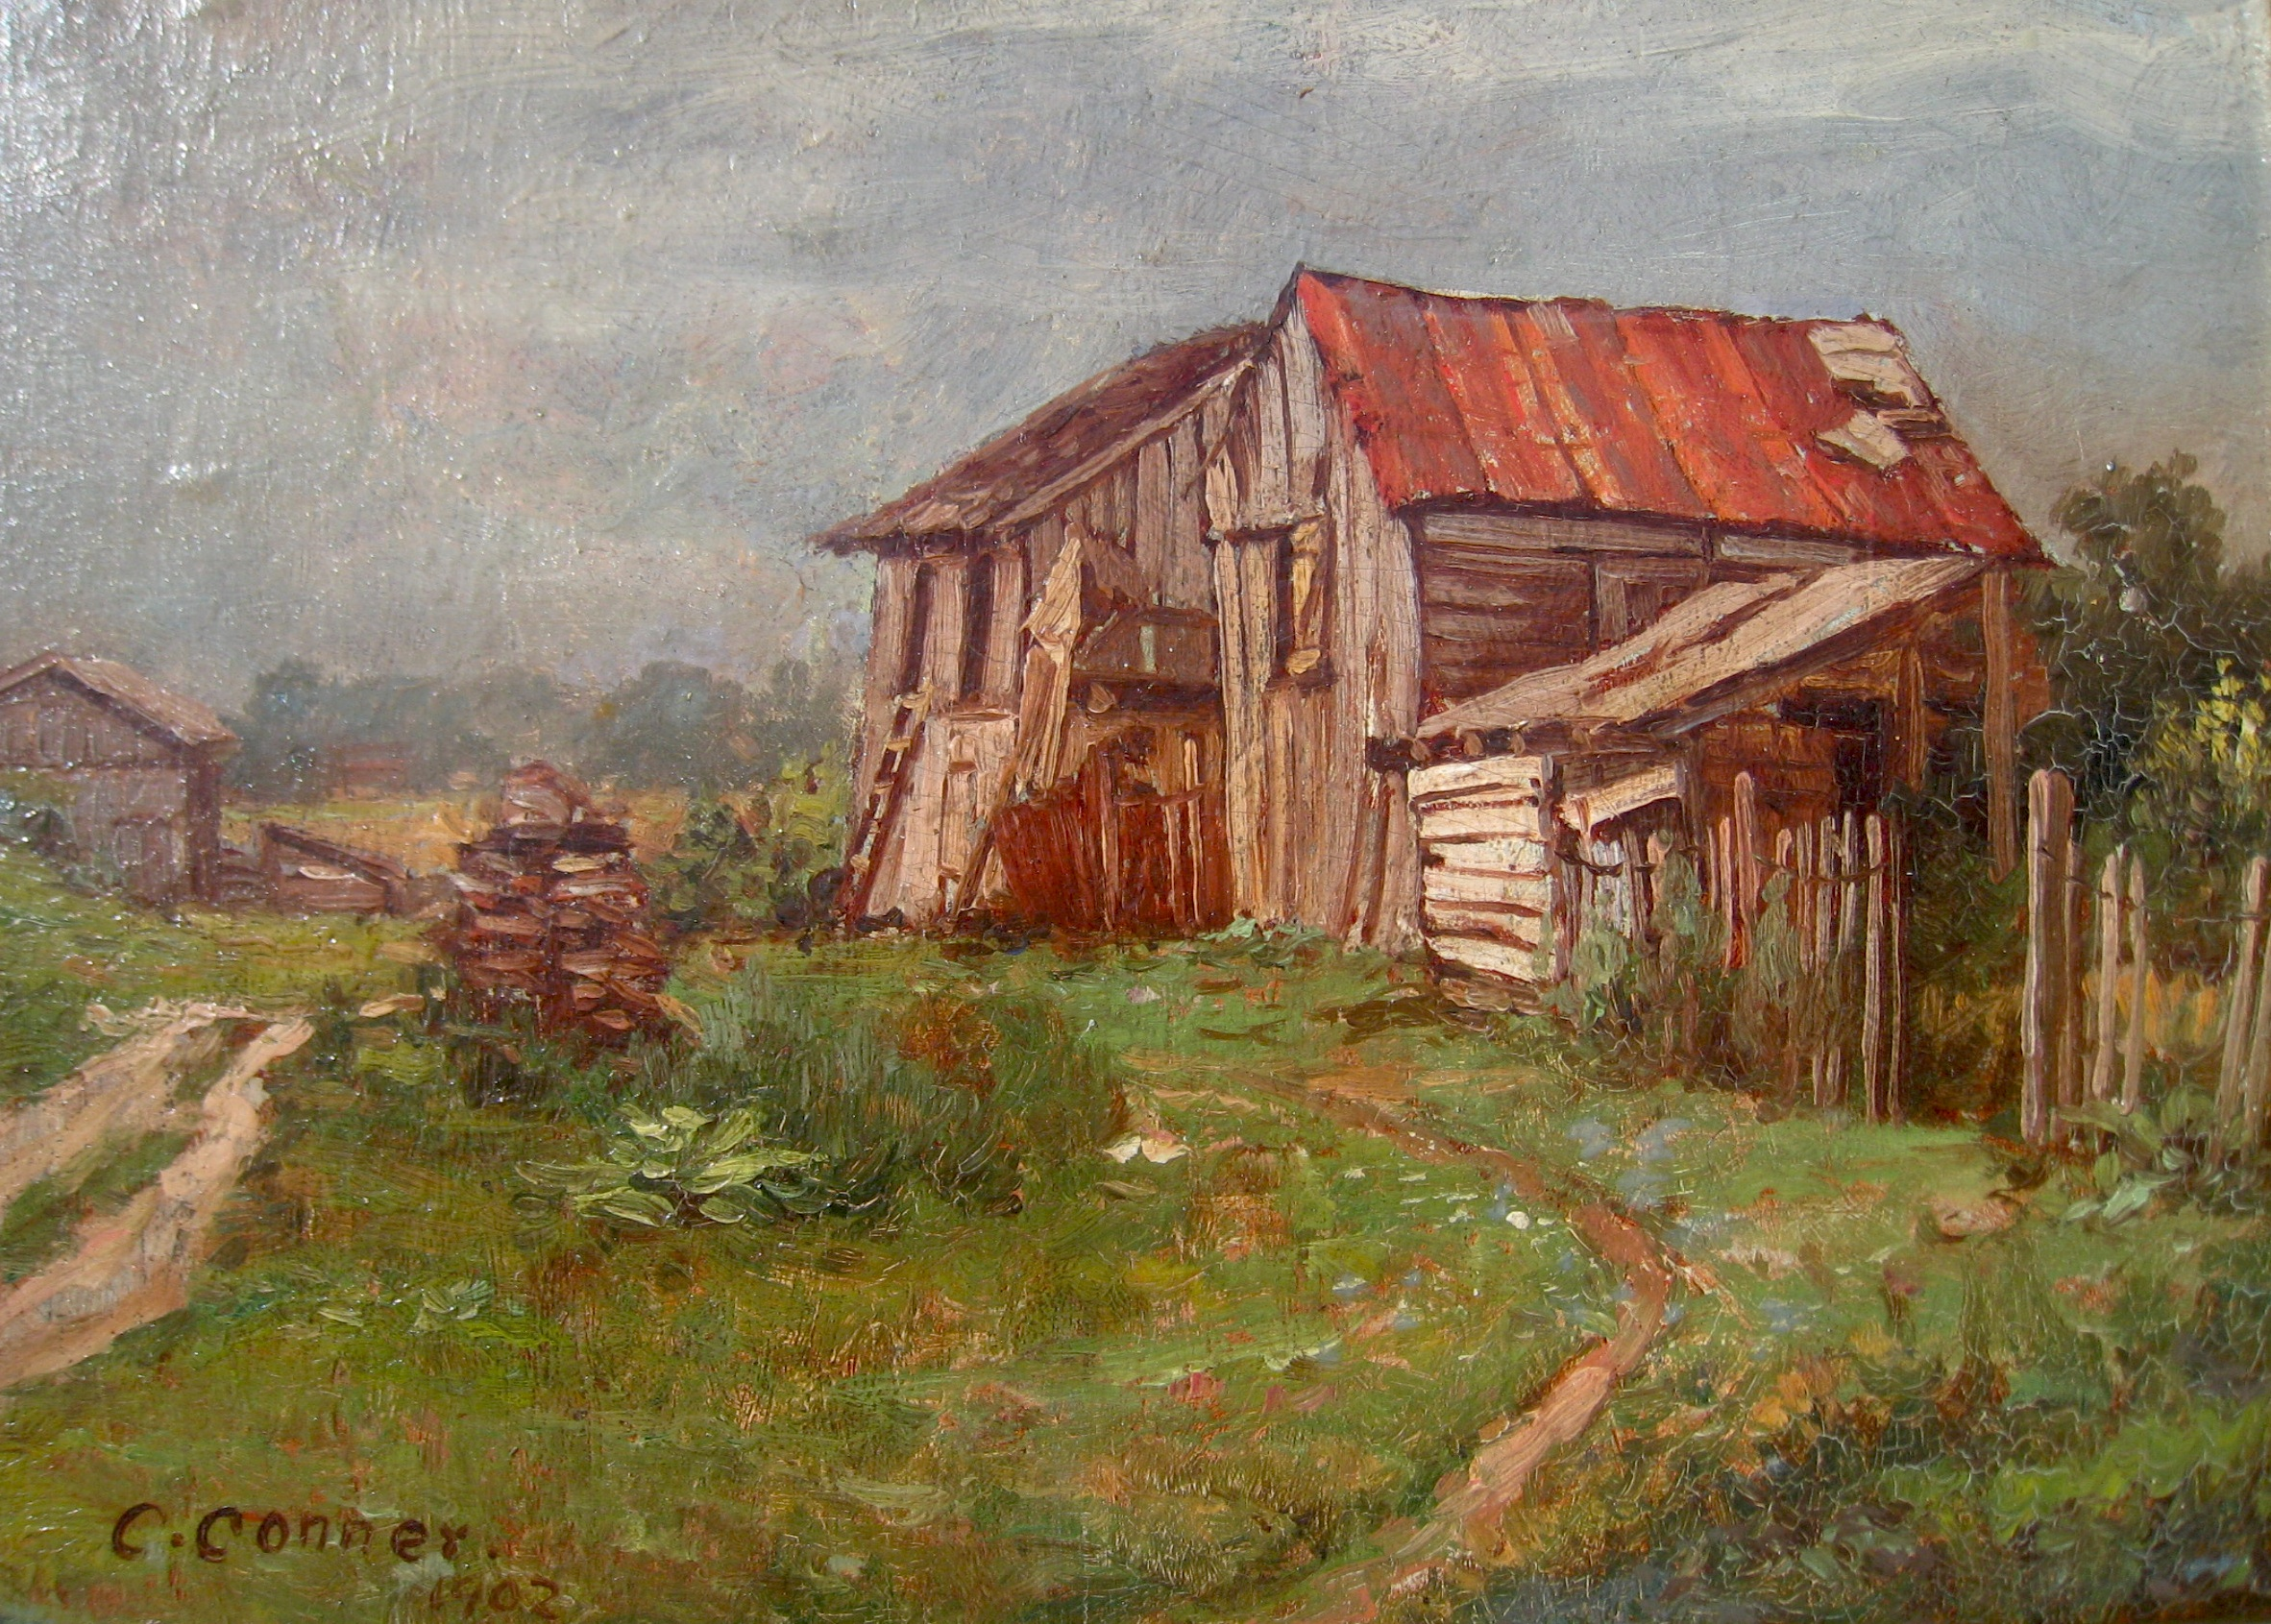 conner-theoldsheds-cropped